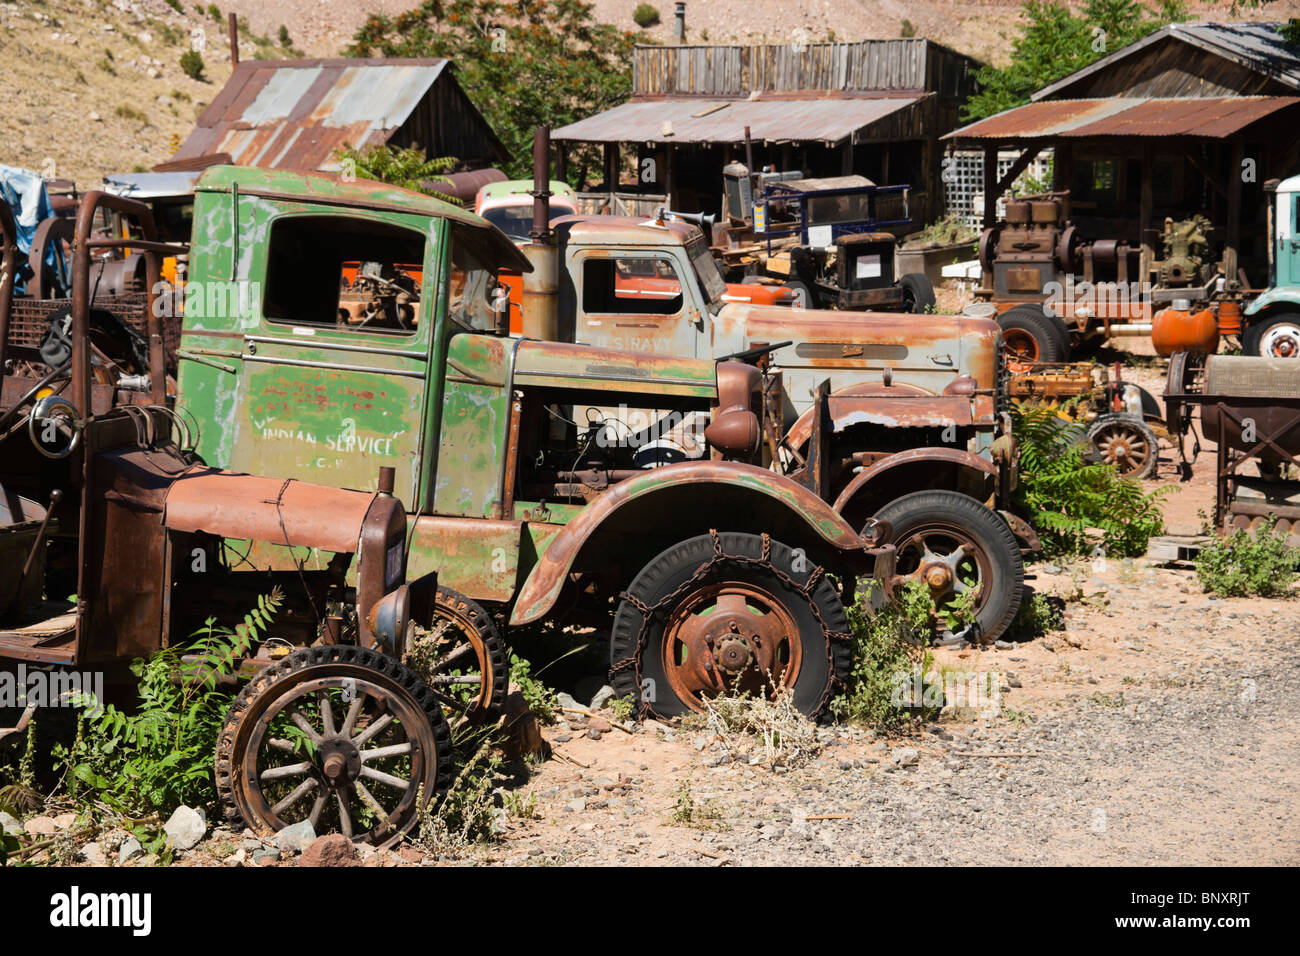 For Arizona Mining Towns, A Diverse Economy Is A Good ... |Arizona Mining Towns